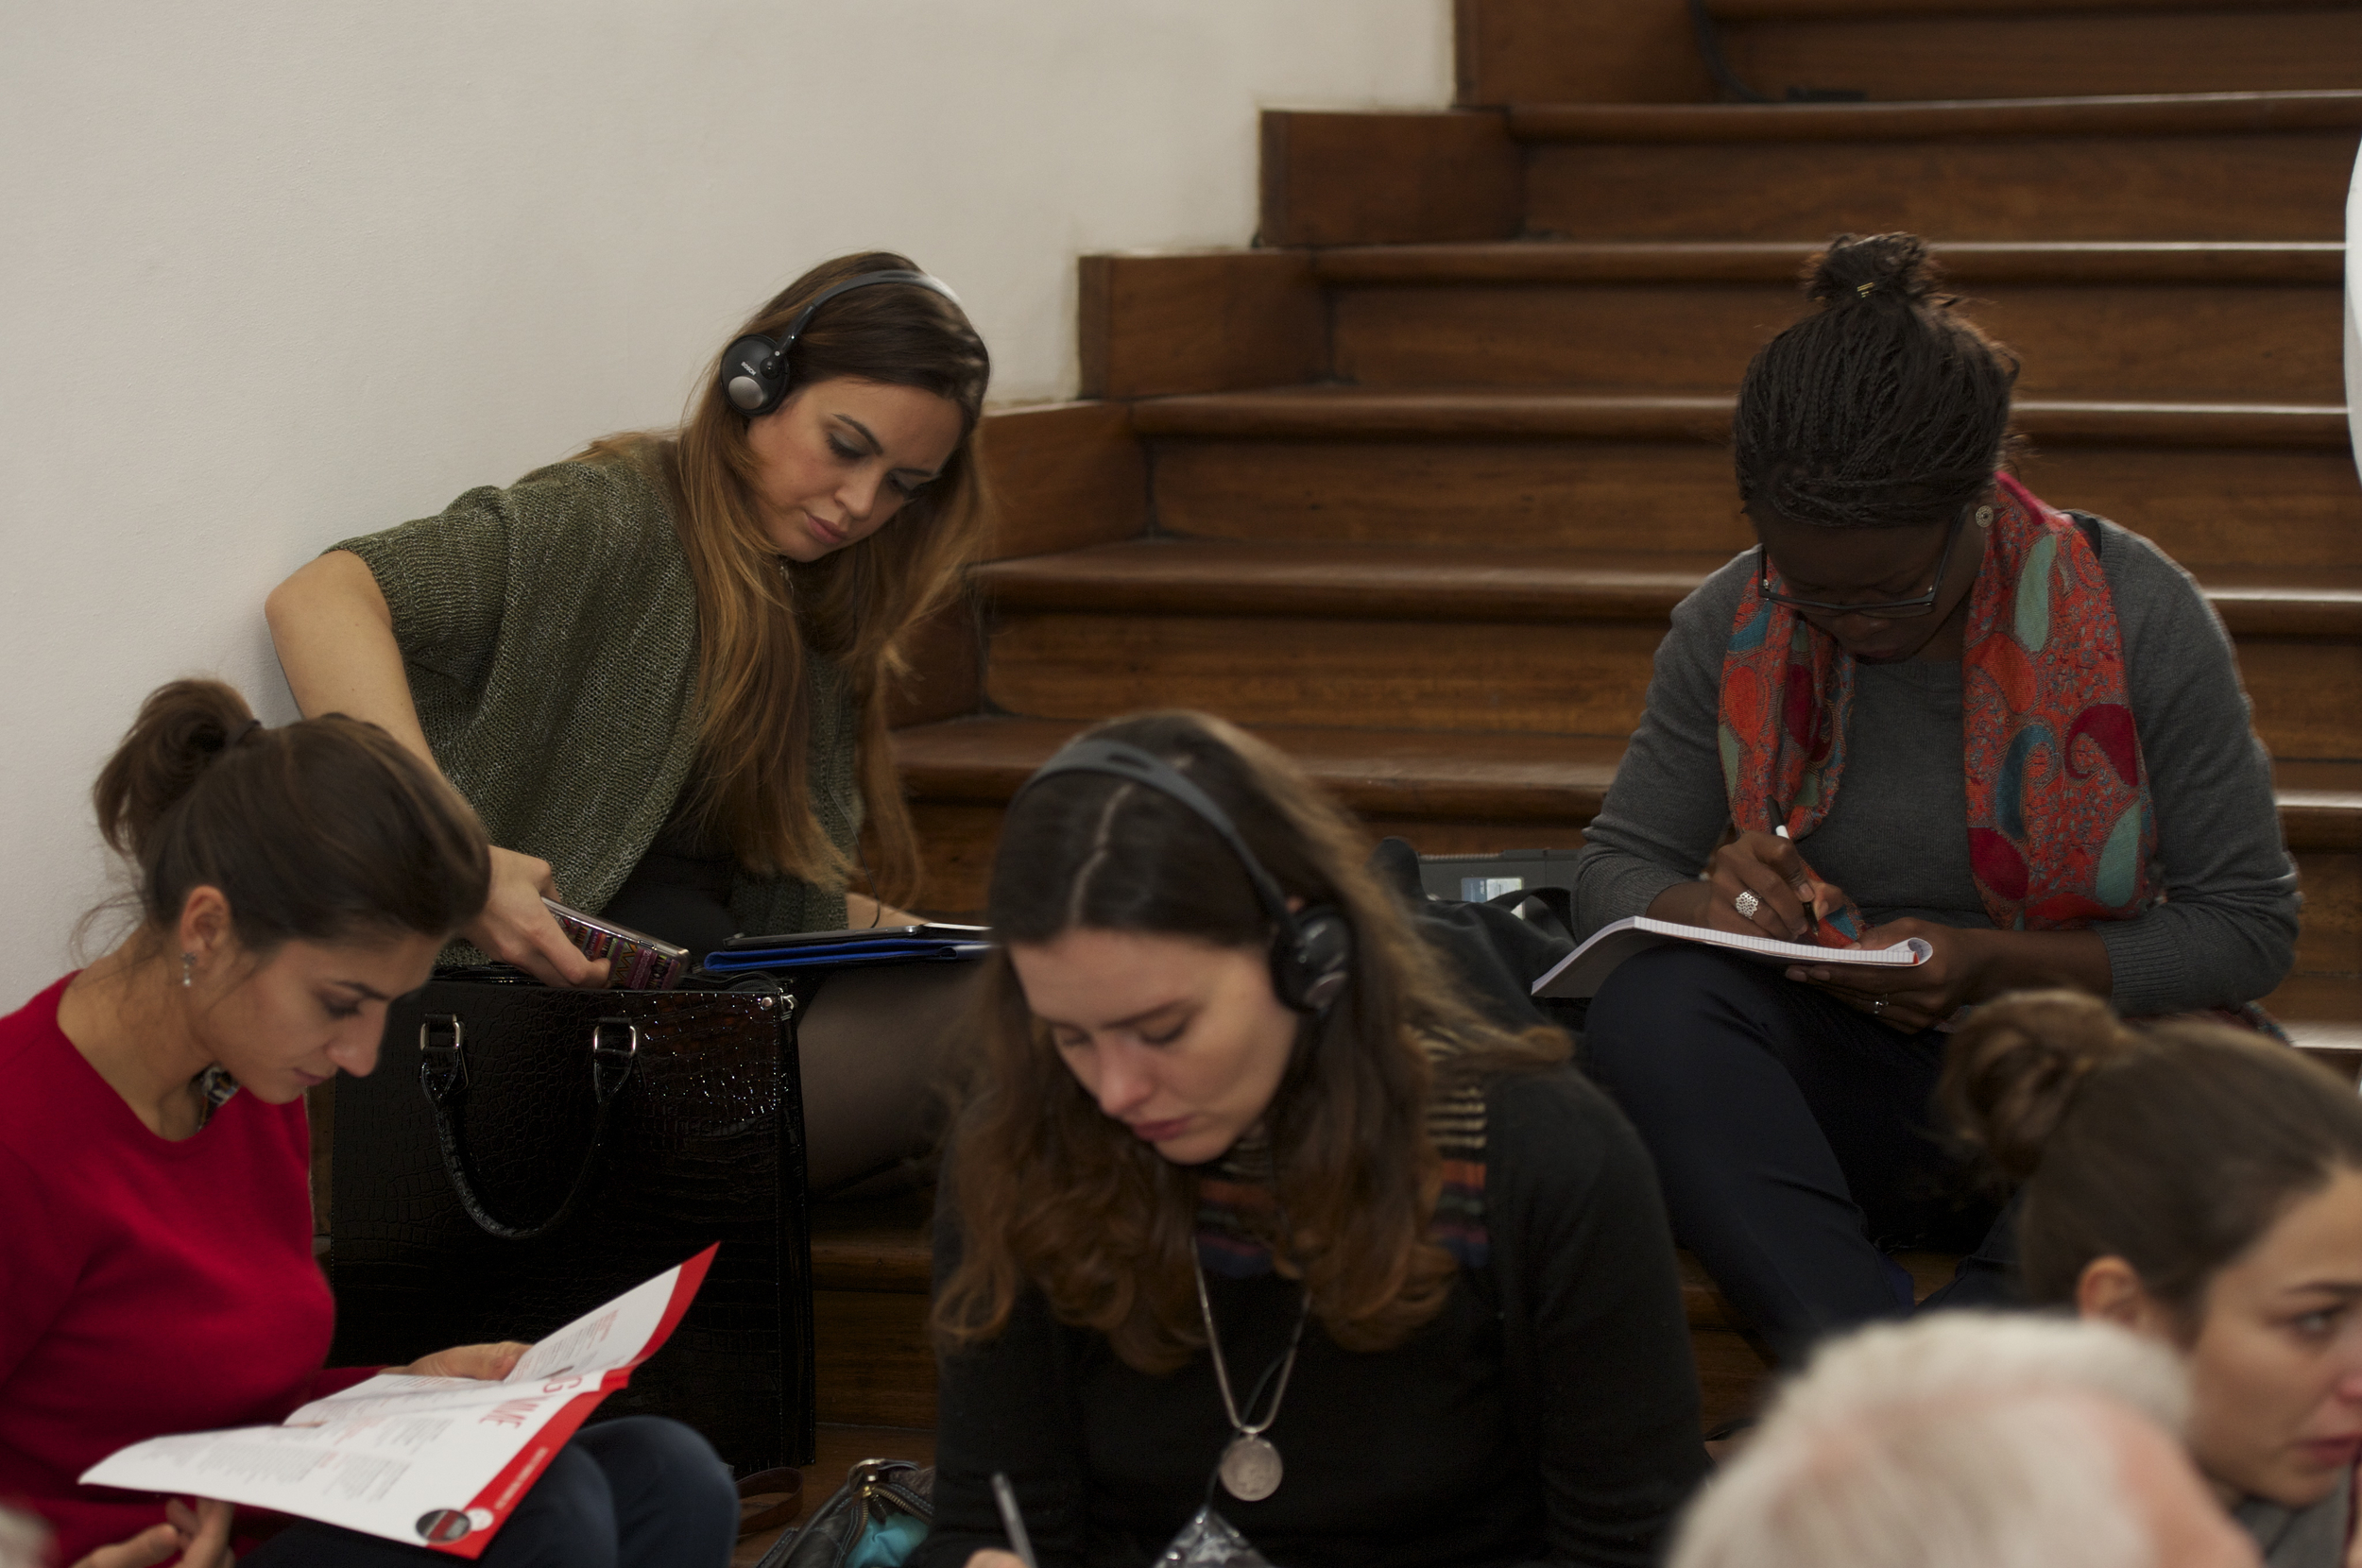 Part of theaudience during the Historic Speech debate at BOZAR.Photo ©Yves Gervais